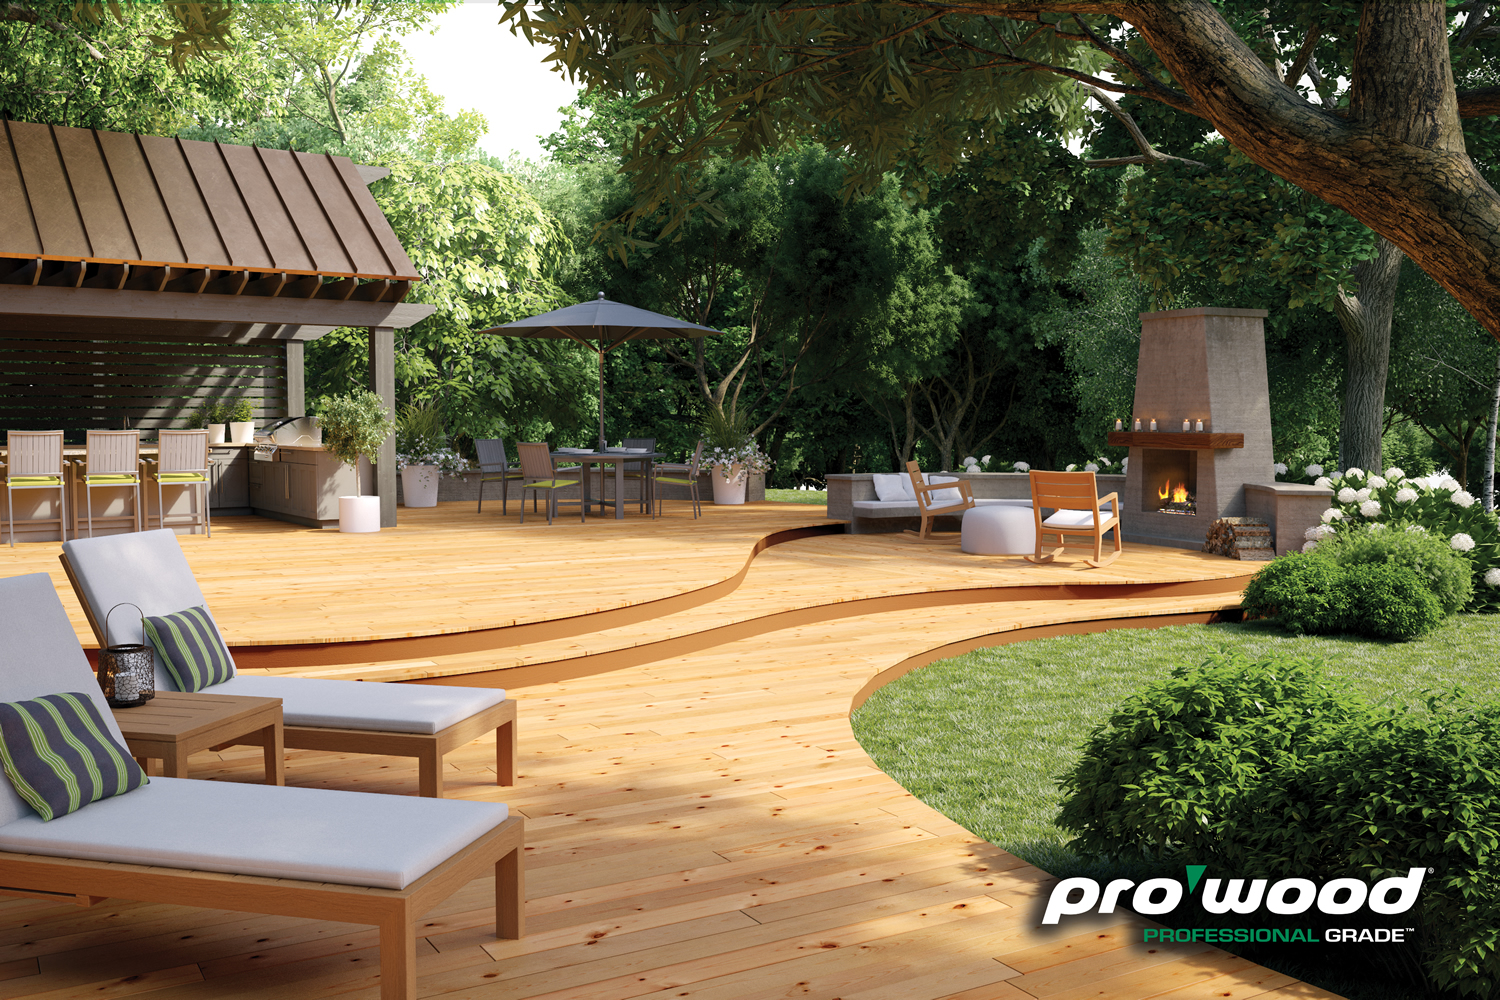 Prowood Embracing New Standards For Treated Lumber